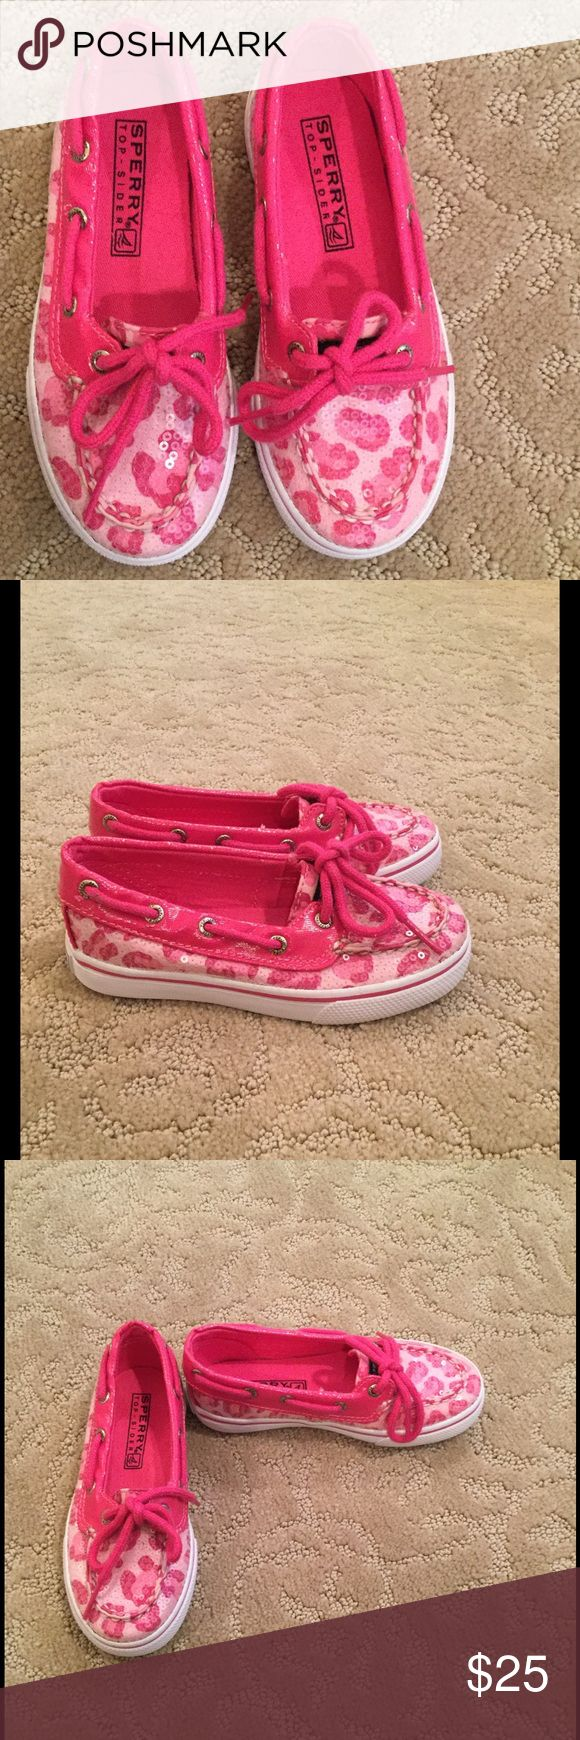 Like New Little Girls Sperry Boat Shoes Pink Sperry Boat shoes Never worn Sperry Shoes Sandals & Flip Flops